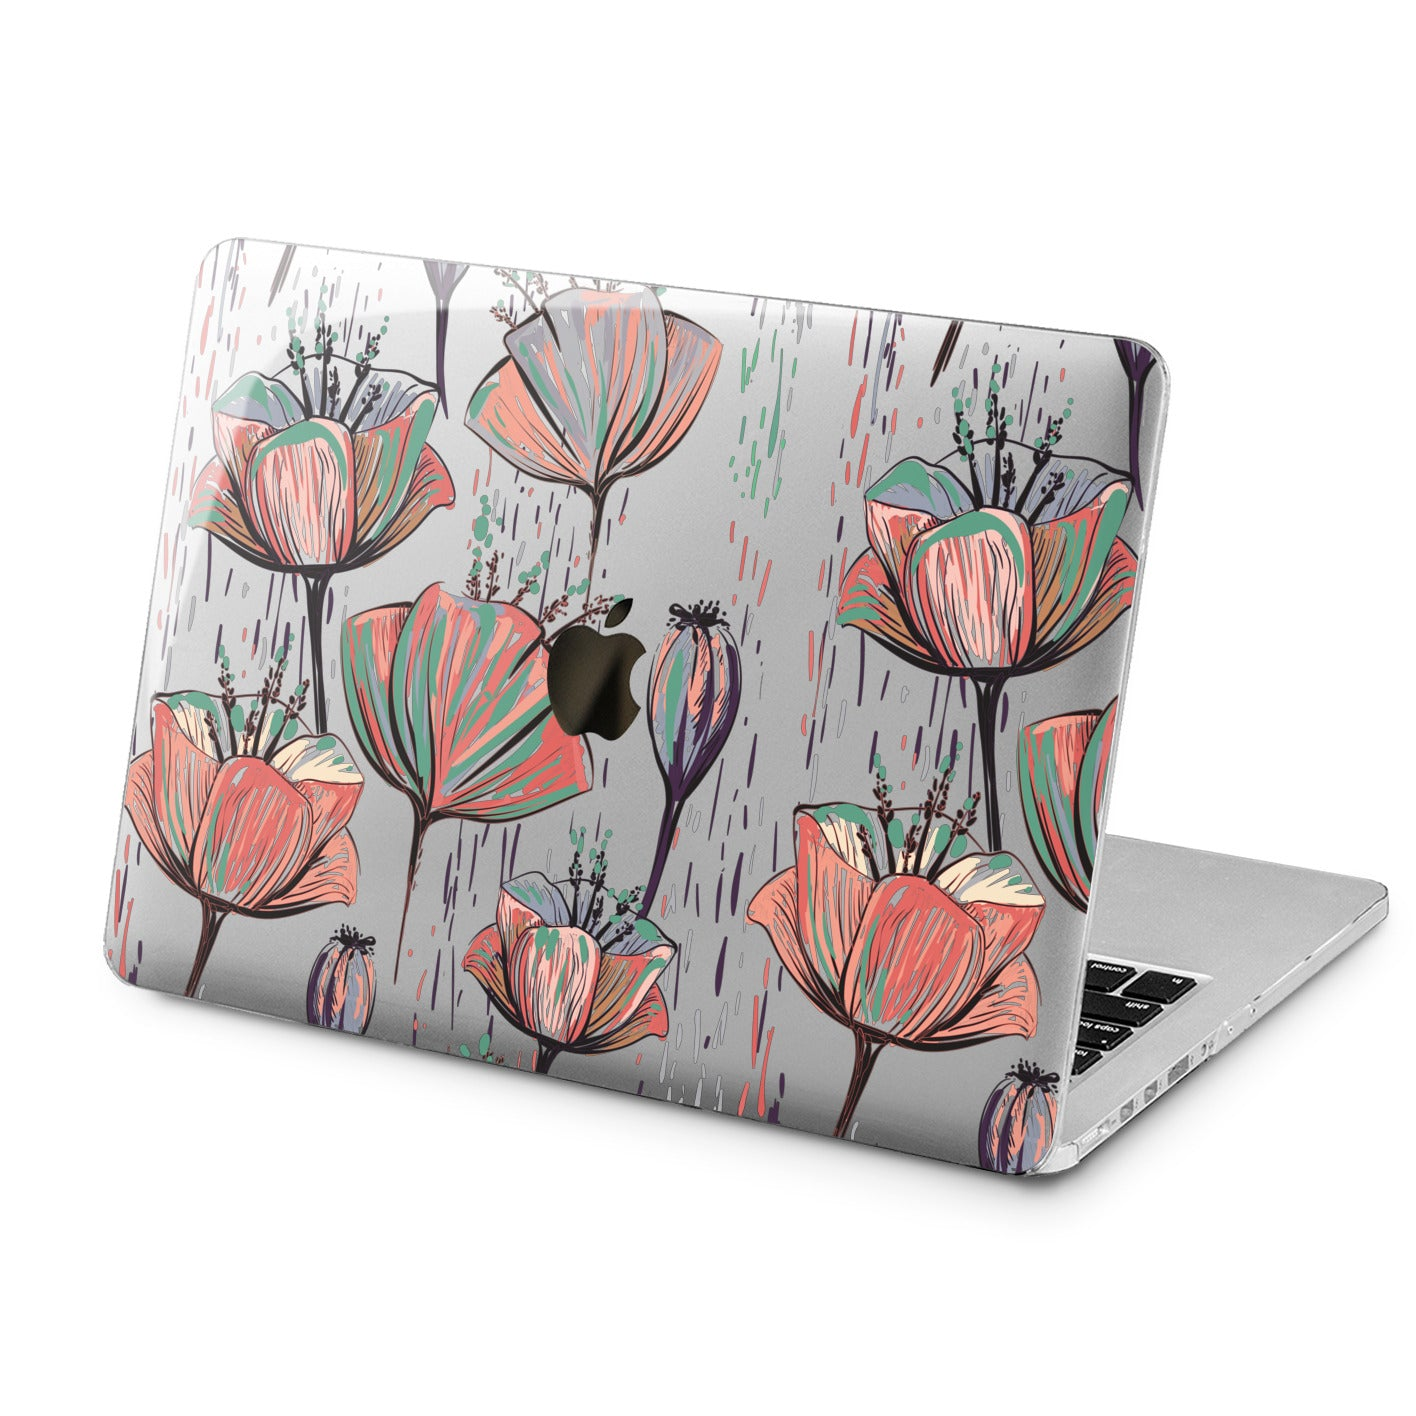 Lex Altern Lex Altern Poppies Theme Case for your Laptop Apple Macbook.